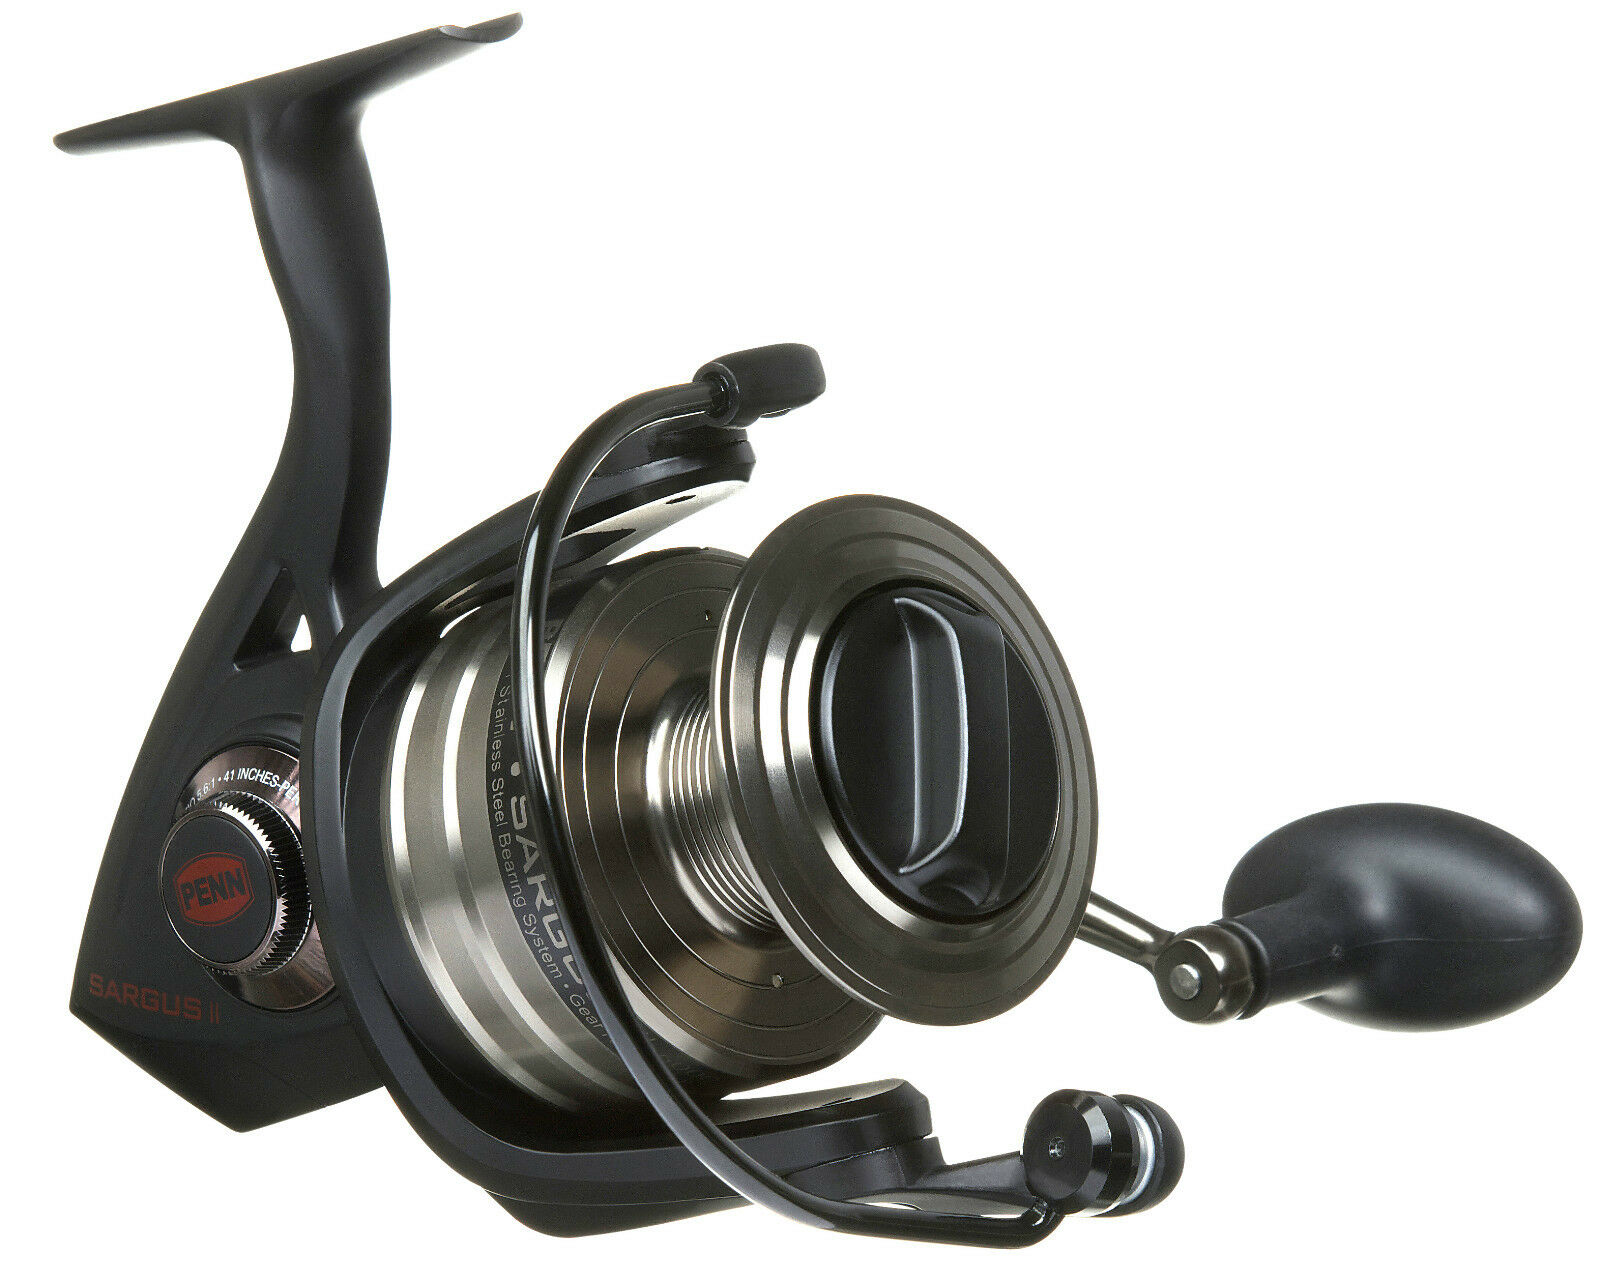 PENN SARGUS II - Spinning Reel Series - All Sizes - SARGUS 2